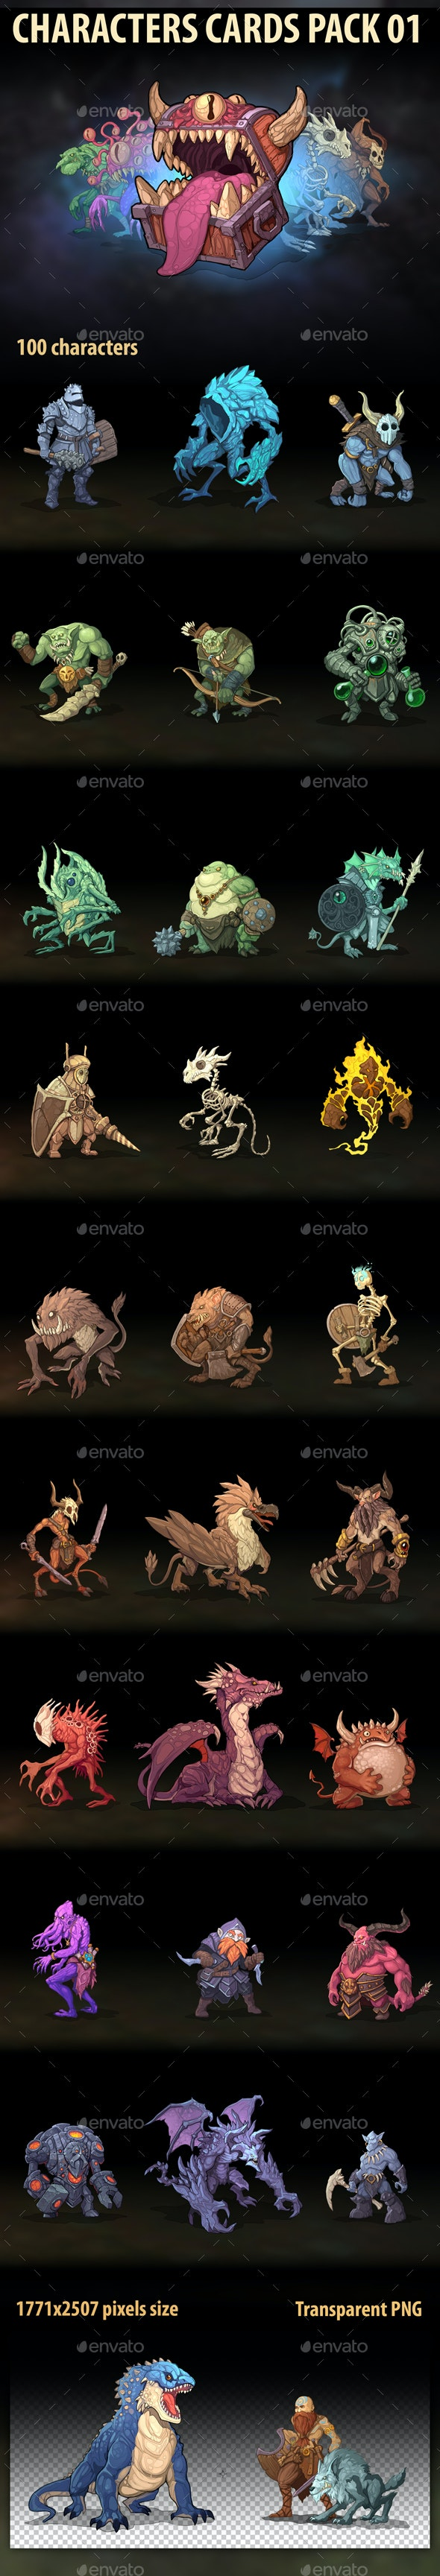 Characters Cards Pack 01 - Miscellaneous Game Assets